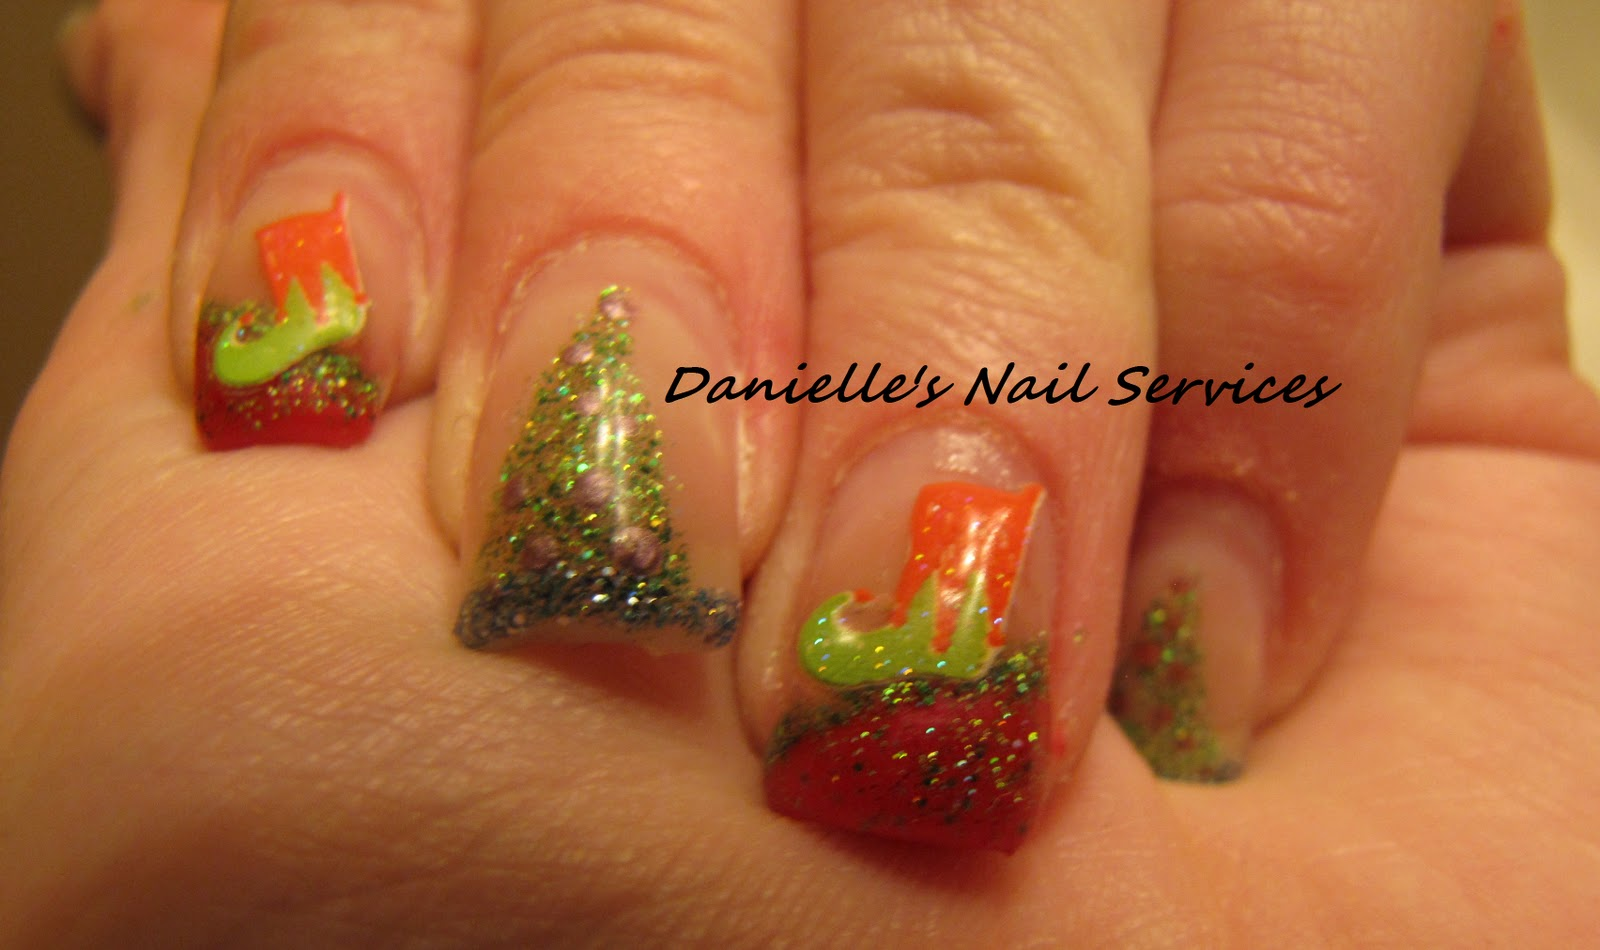 Danielle's Nail Services: New Christmas Nails!